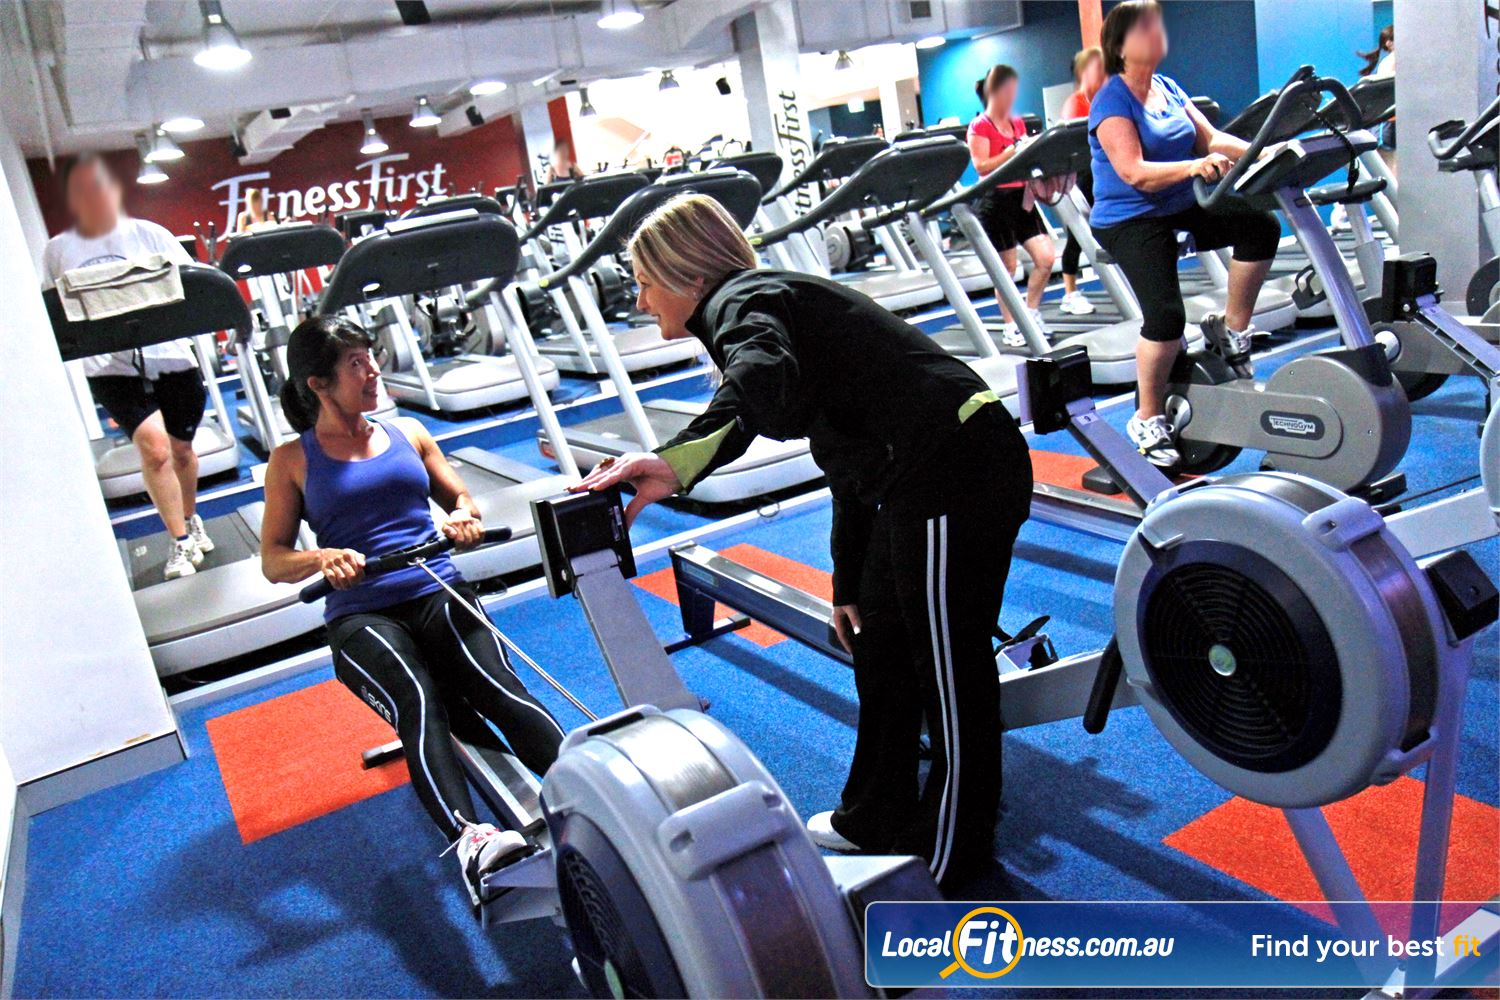 Goodlife Health Clubs Innaloo Choose your Goodlife cardio weapon including indoor rowing.